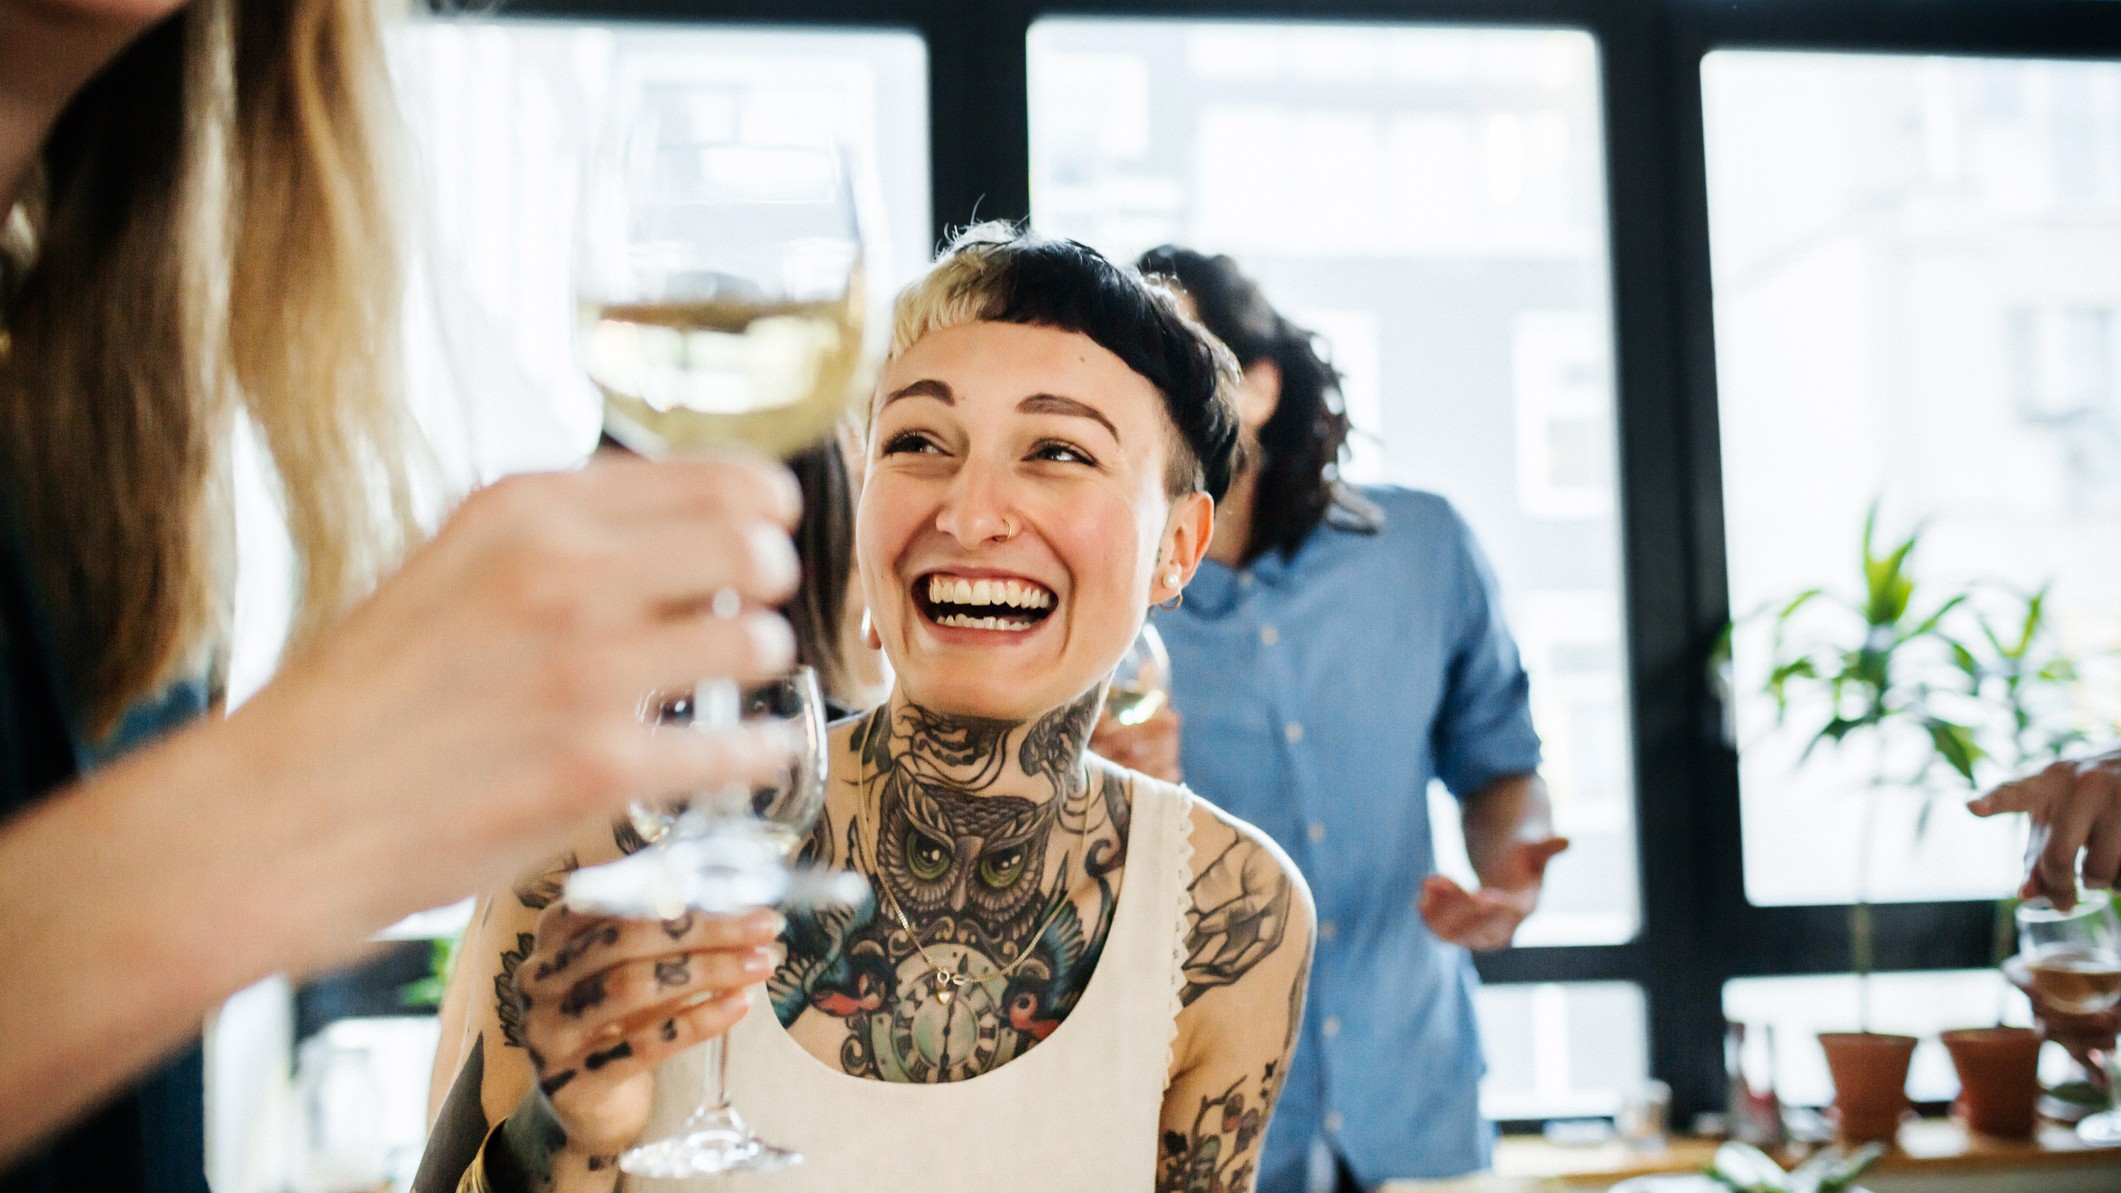 smiling person with tattoos enjoying a glass of wine with others